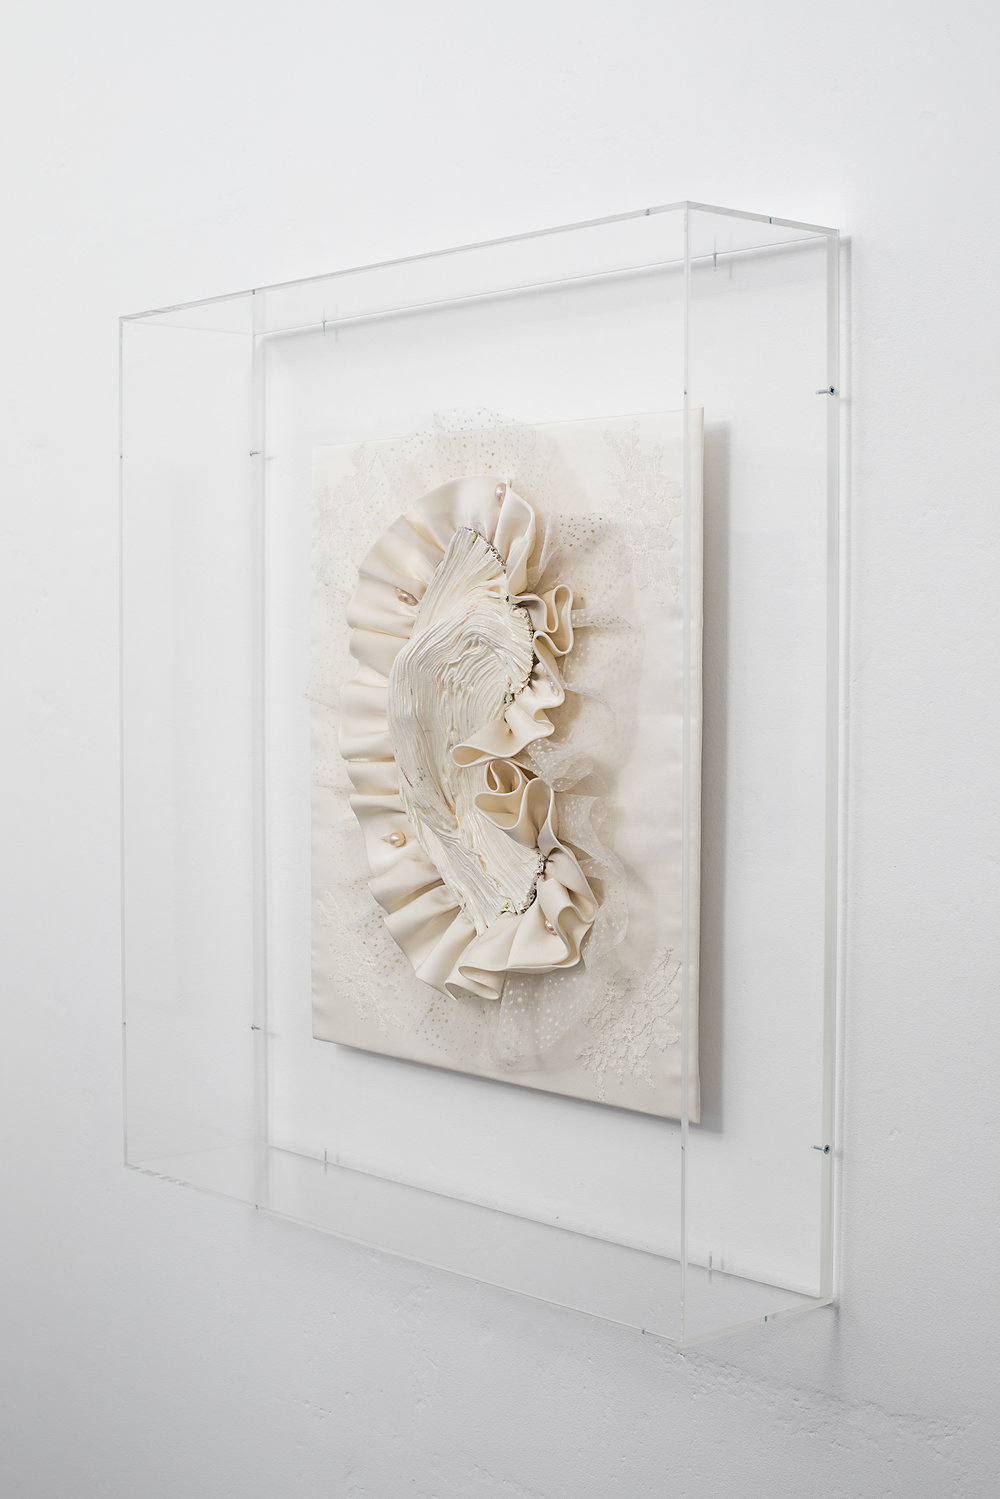 Side detail of Gabriella Loeb,  relic,  silk satin, lace, baroque pearls, plexiglass 61 x 66 x 14 cm